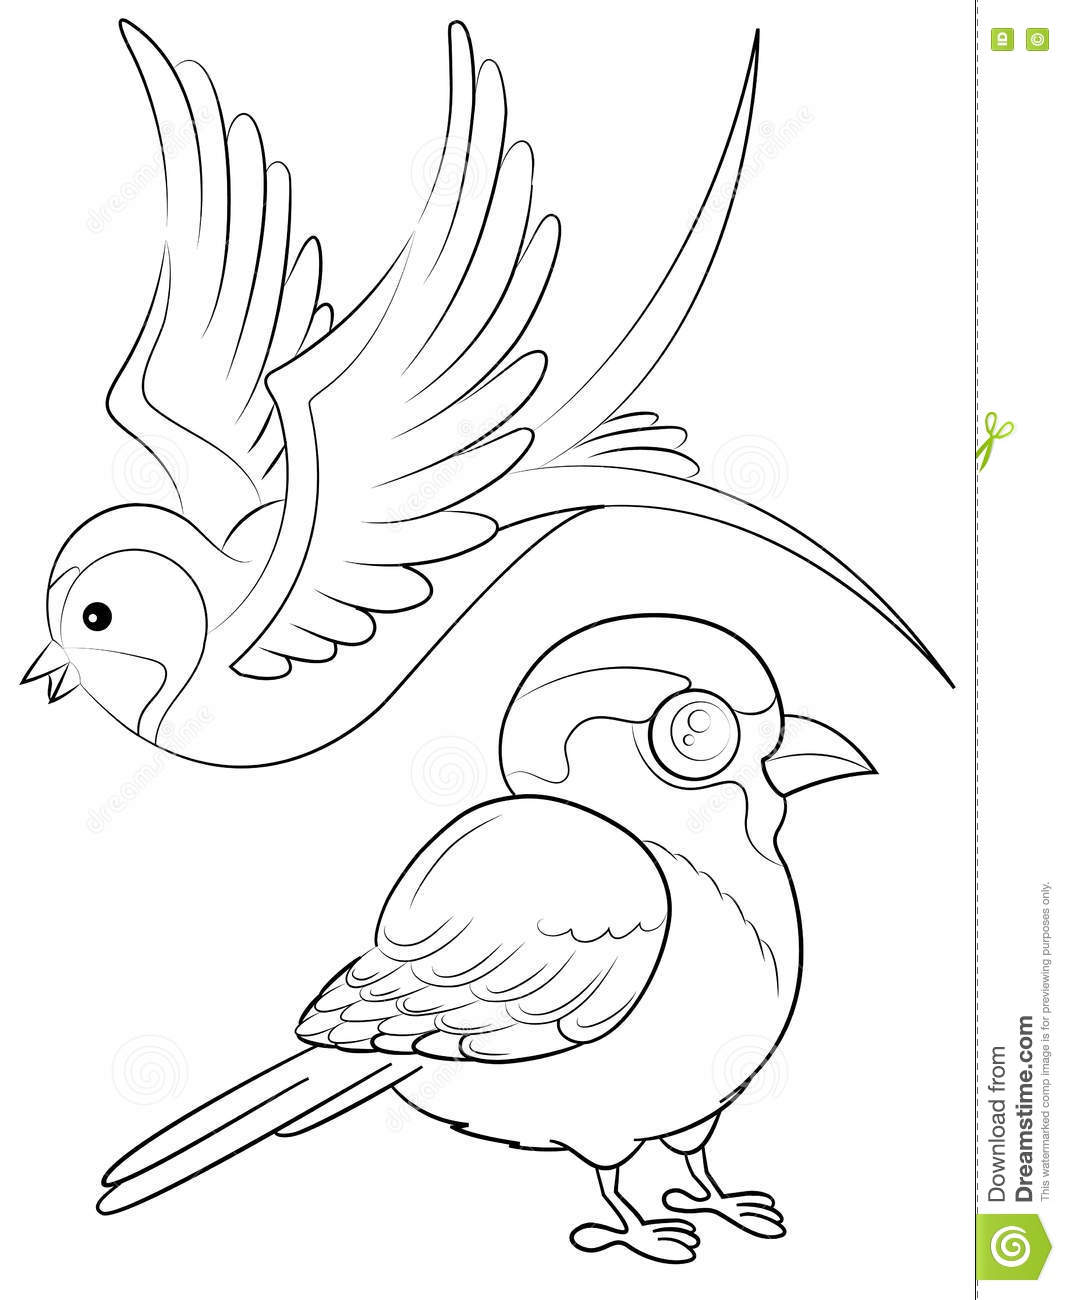 Birds Coloring Page stock image. Illustration of vector - 77177433